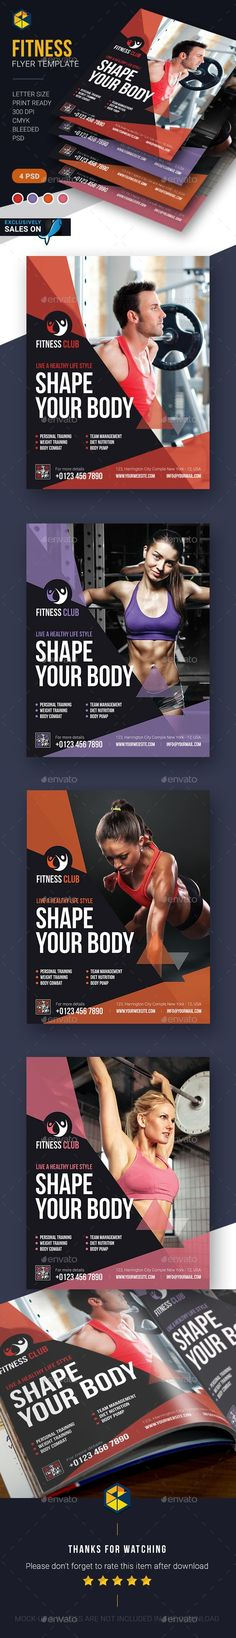 Outdoor Boot Camp Flyer For Group Training Classes From Fittemplates